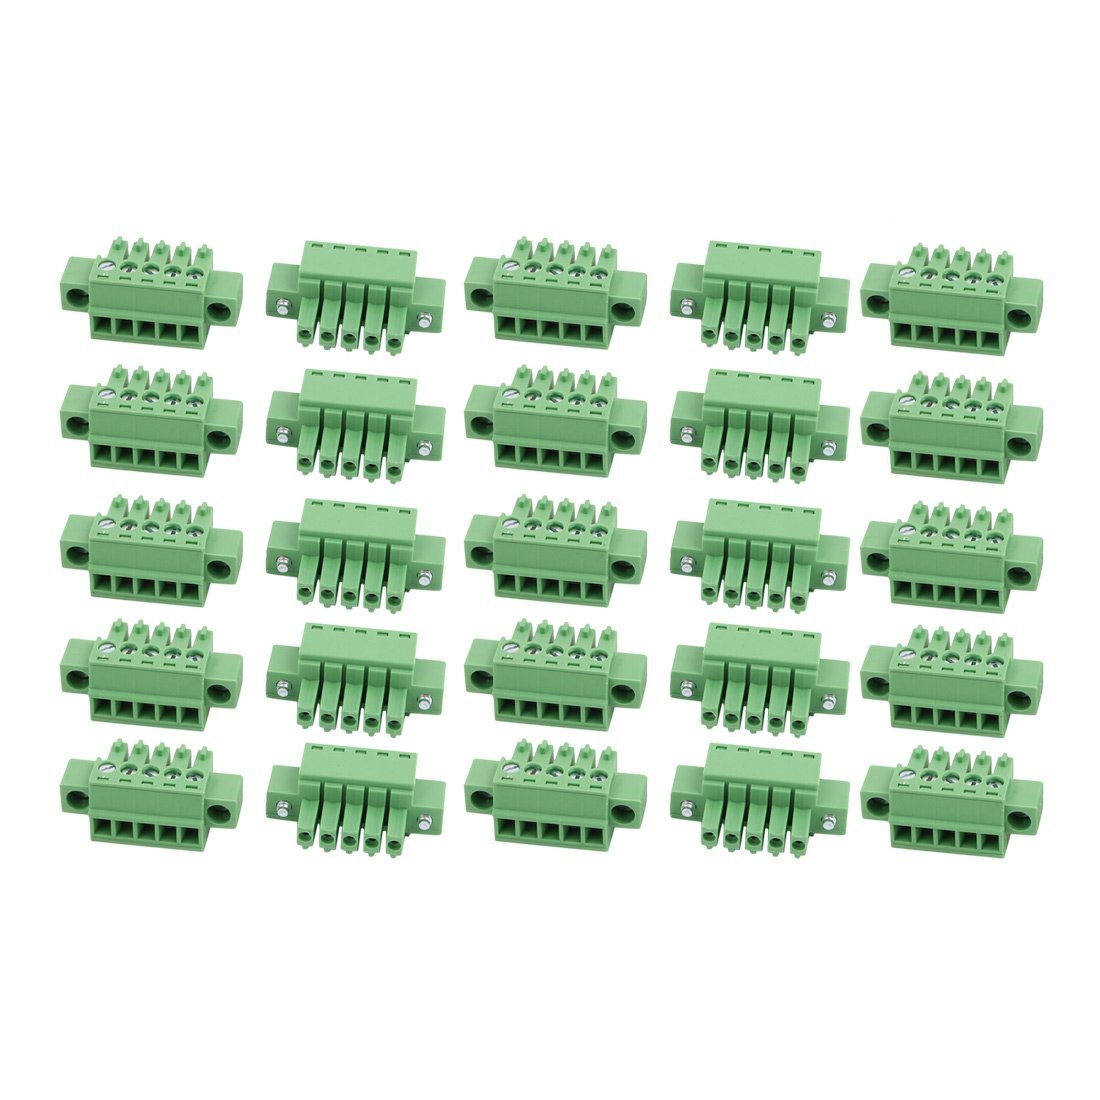 uxcell 25Pcs AC300V 8A 3.5mm Pitch 5P Terminal Block Wire Connection for PCB Mounting